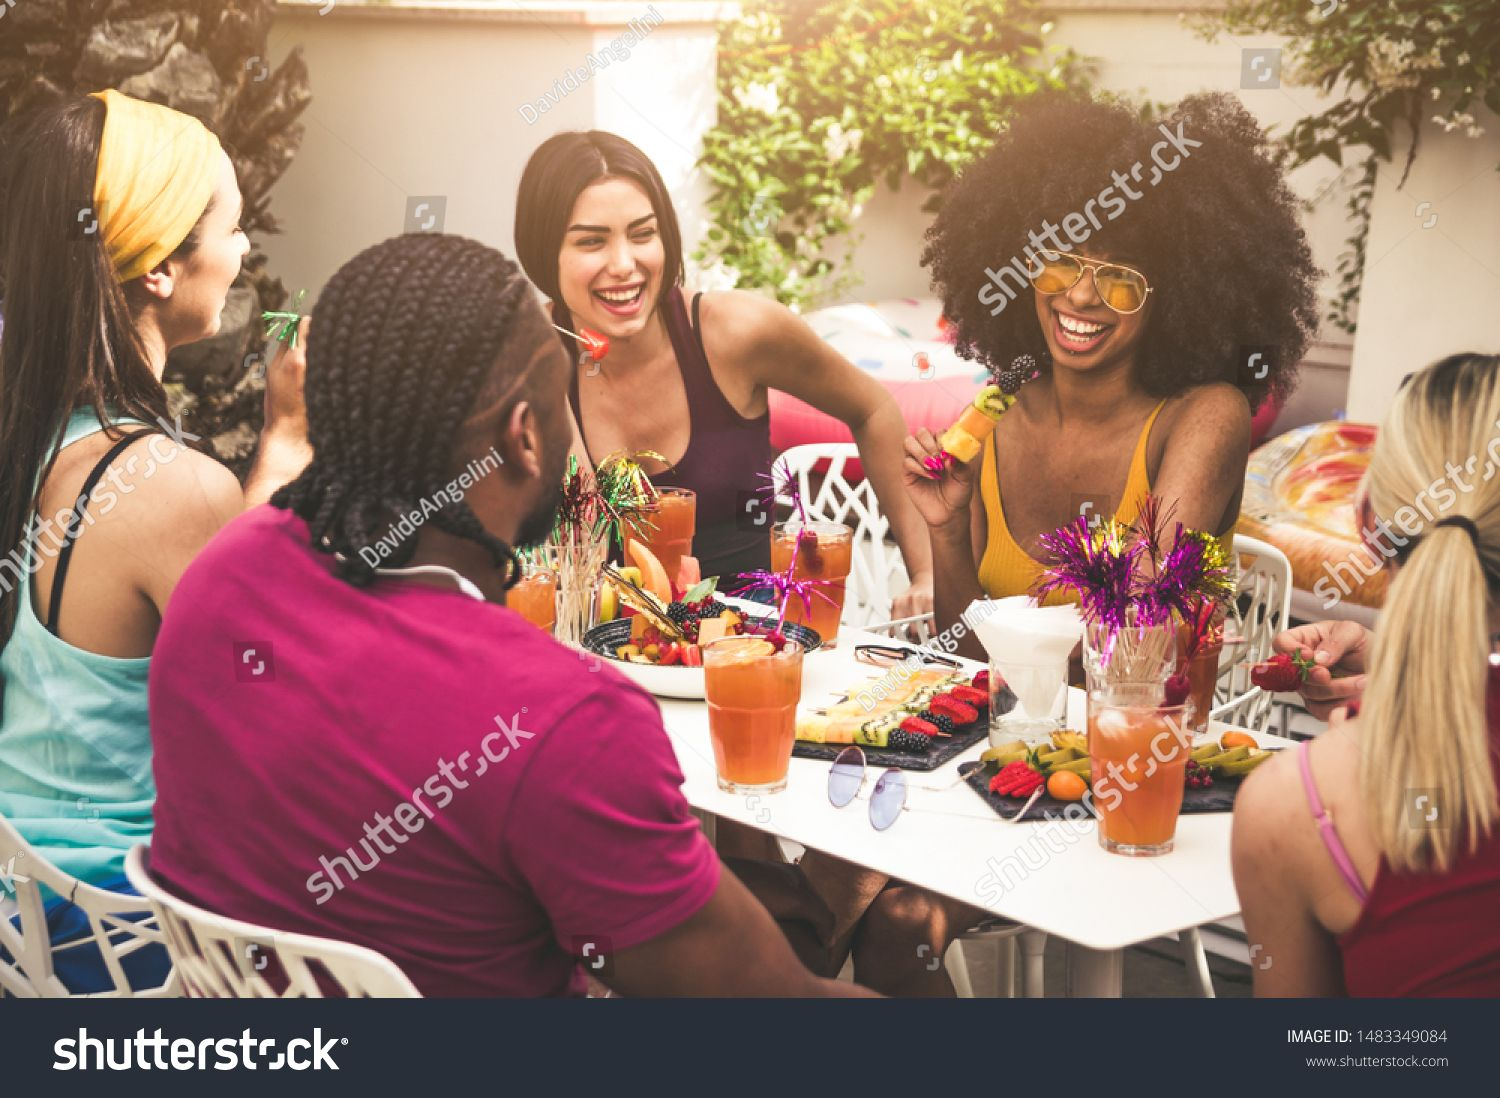 Group of friends enjoying meal and having fun outdoors  People talking and laughing togheter at the restaurant